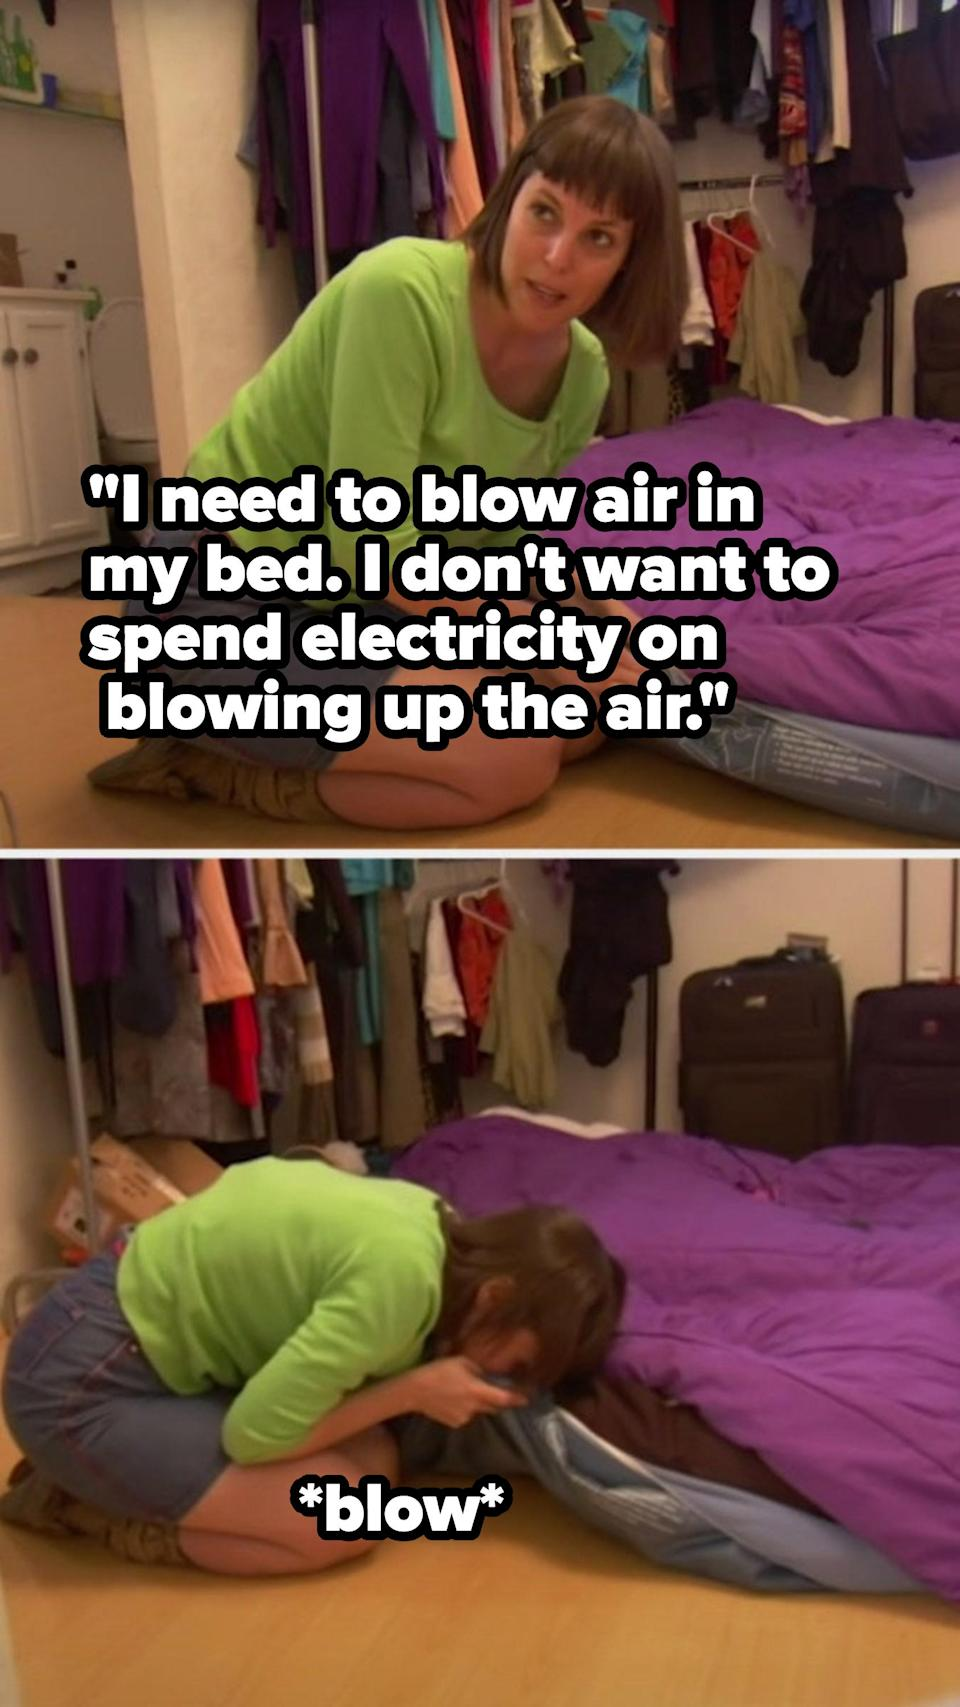 A woman blowing up her air mattress with her mouth